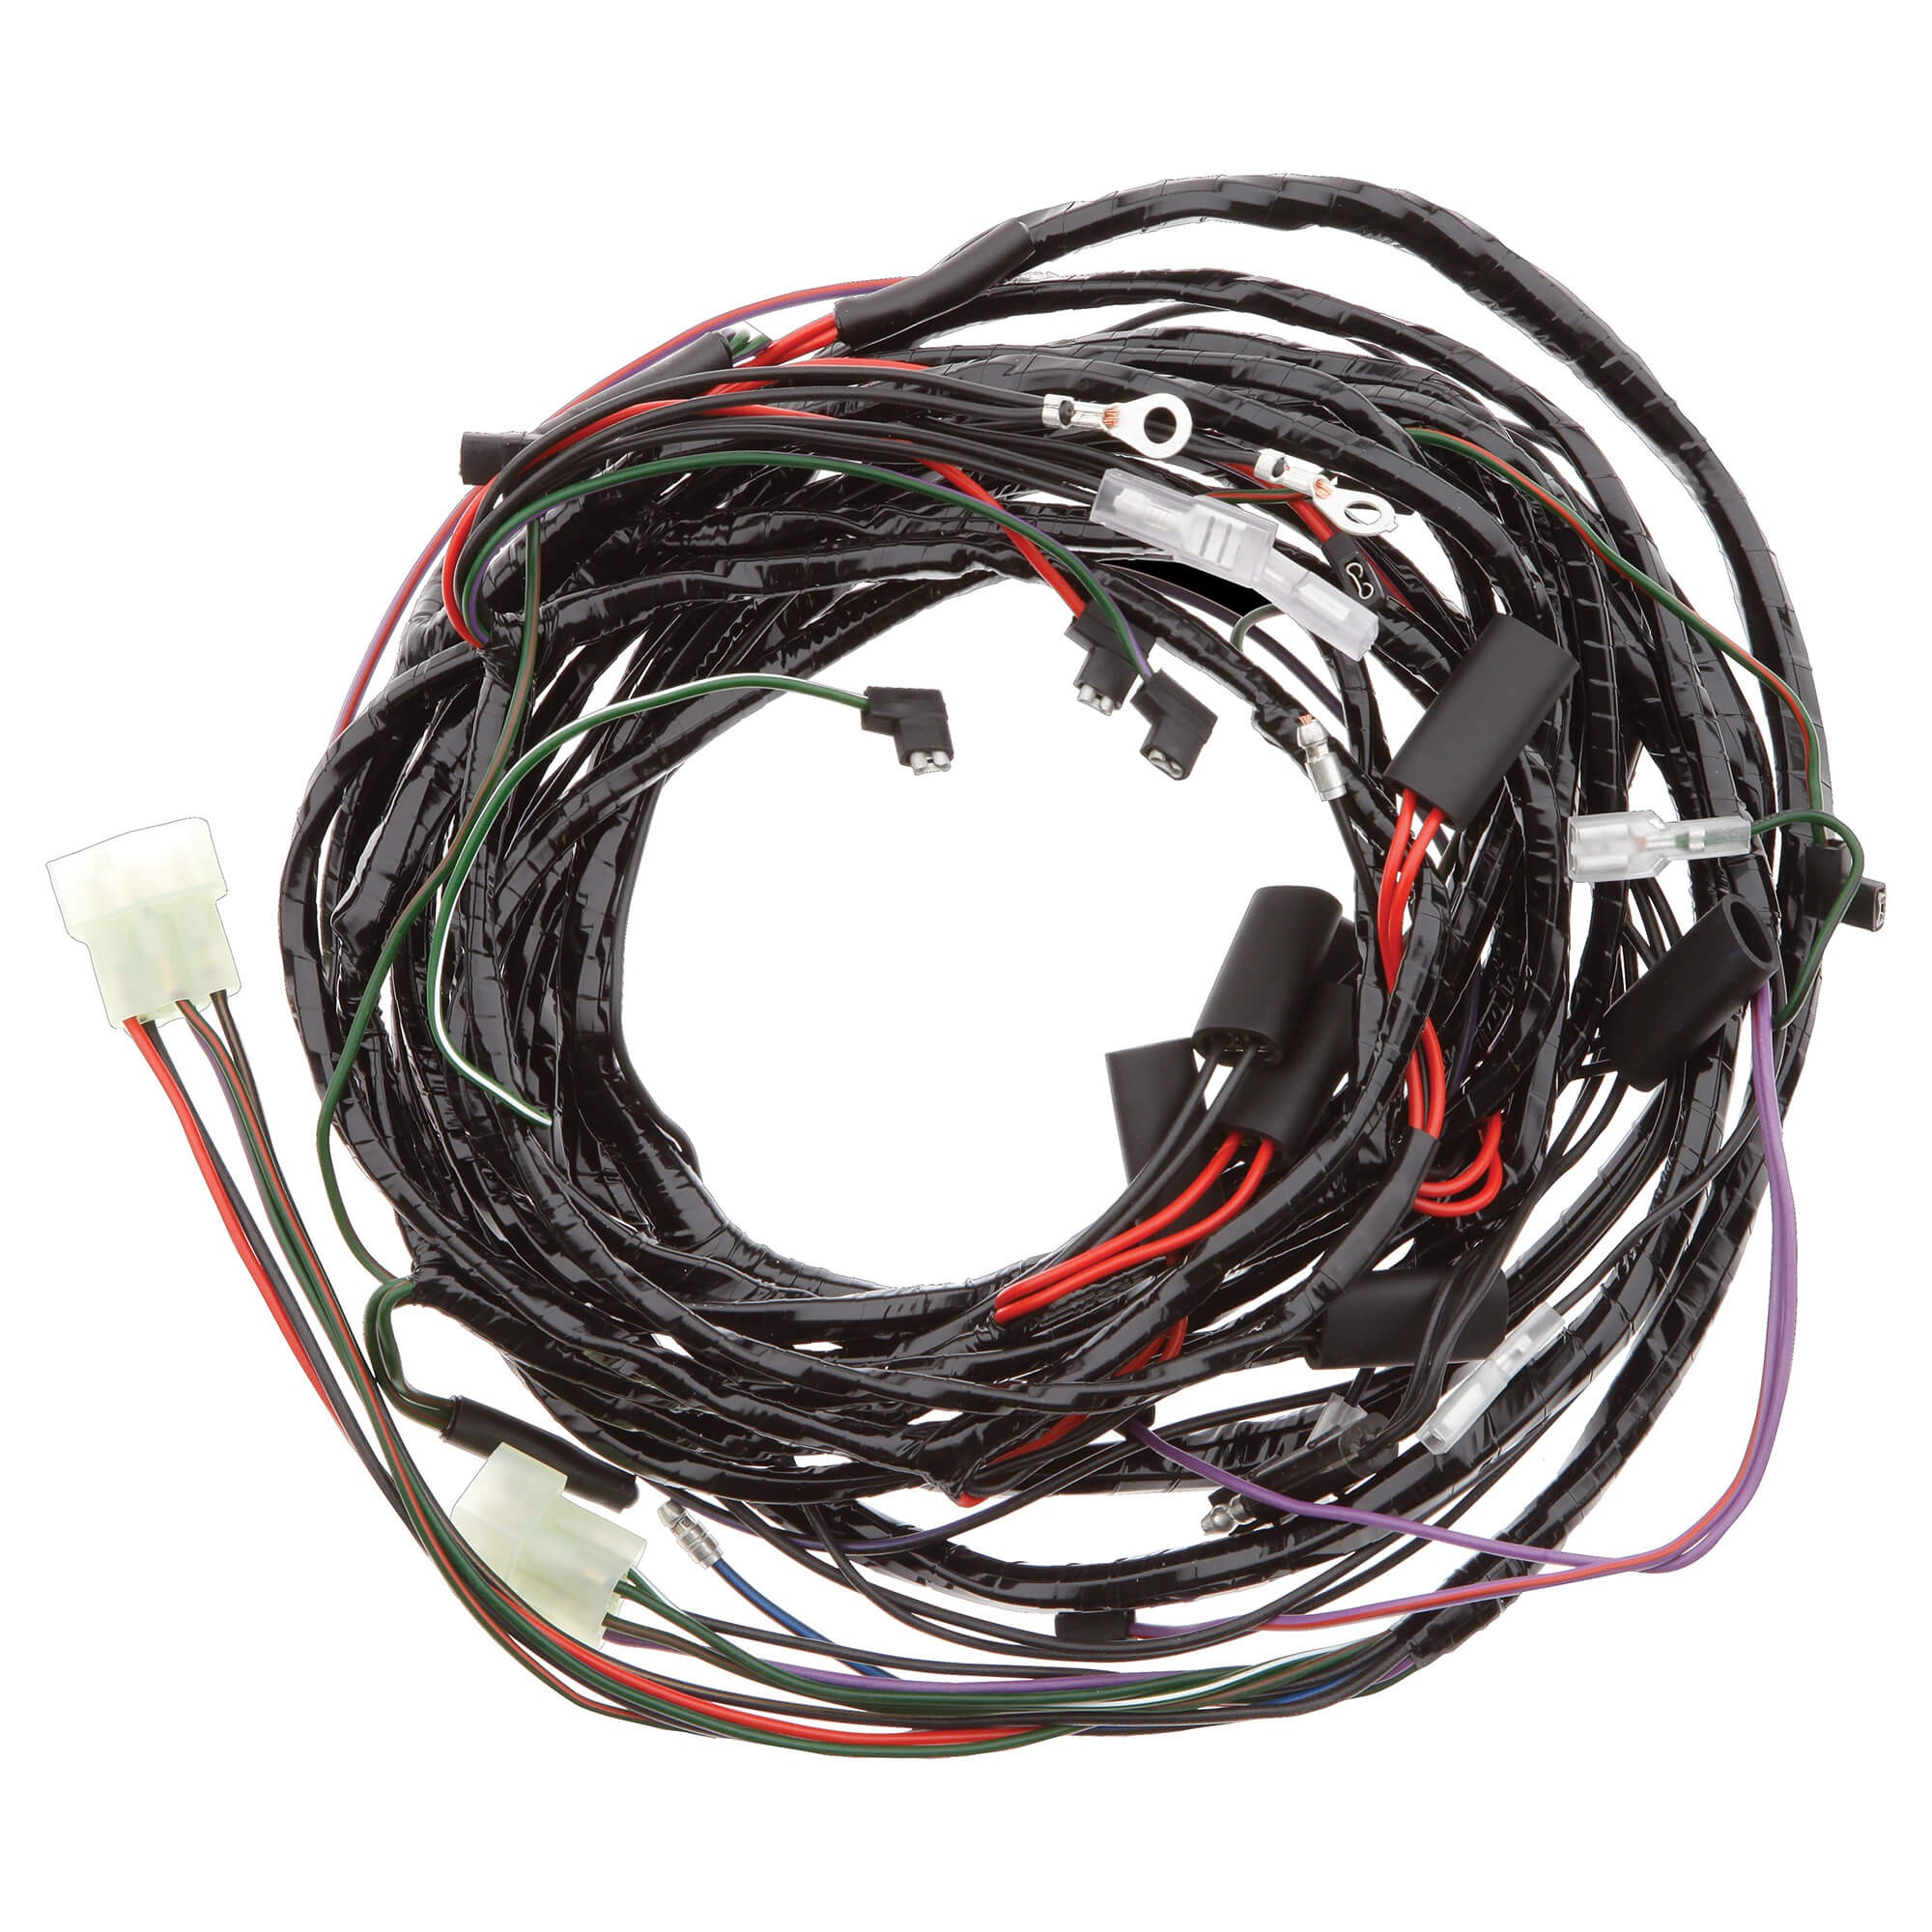 357-574_1 Xj Wire Harness on wire lamp, wire leads, wire connector, wire cap, wire clothing, wire ball, wire antenna, wire sleeve, wire nut, wire holder,